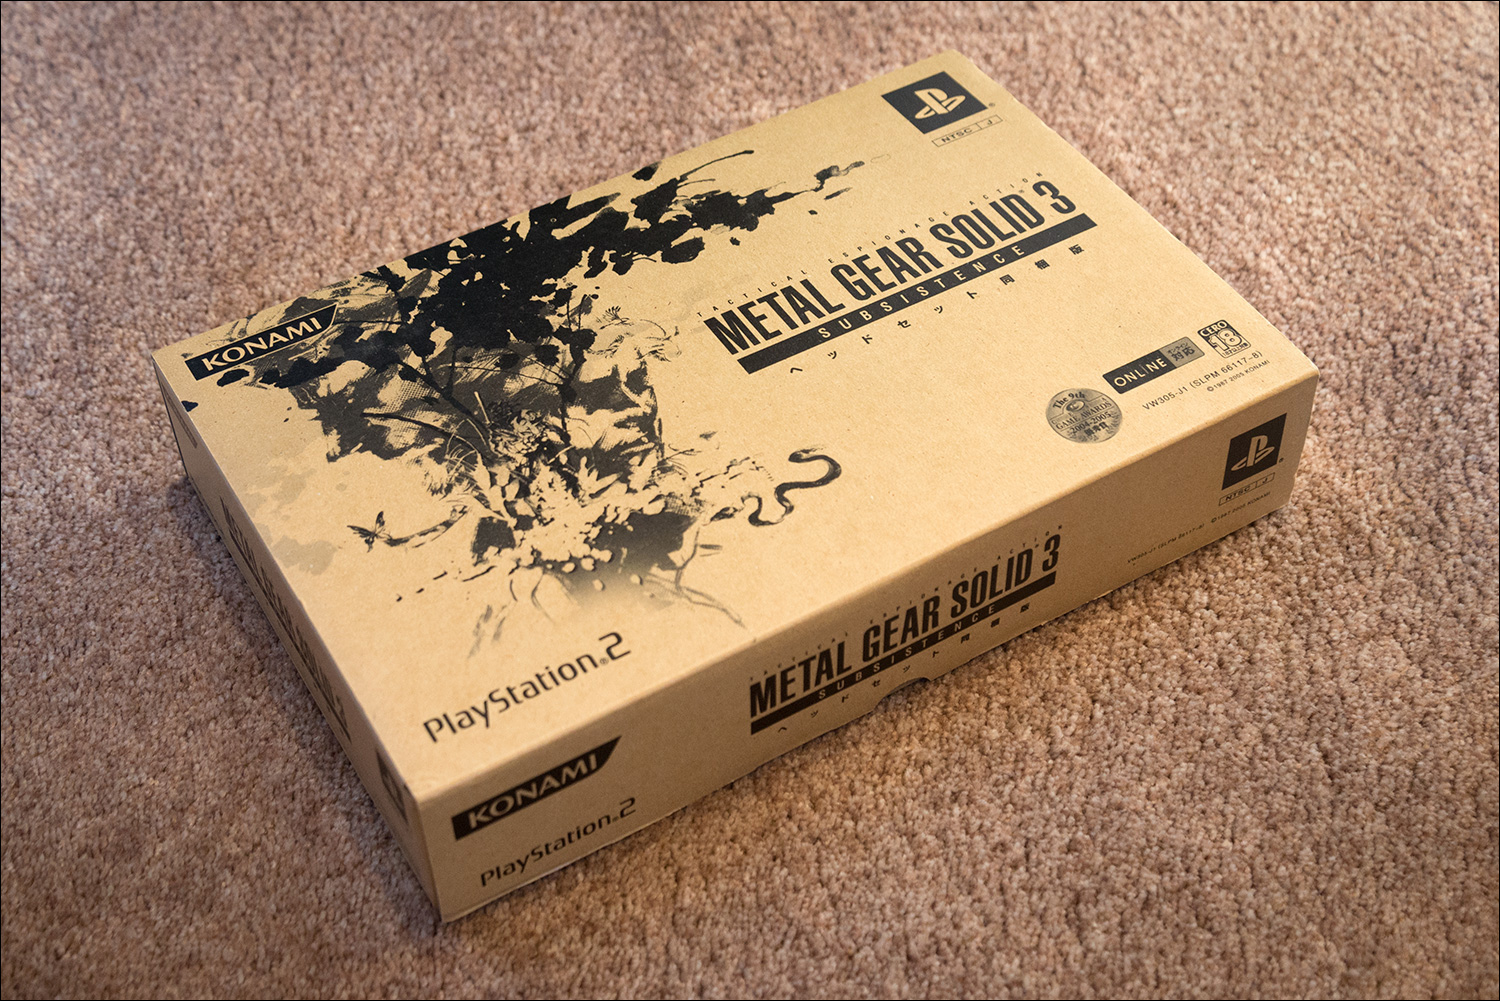 Metal-Gear-Solid-3-Subsistence-Premium-Package